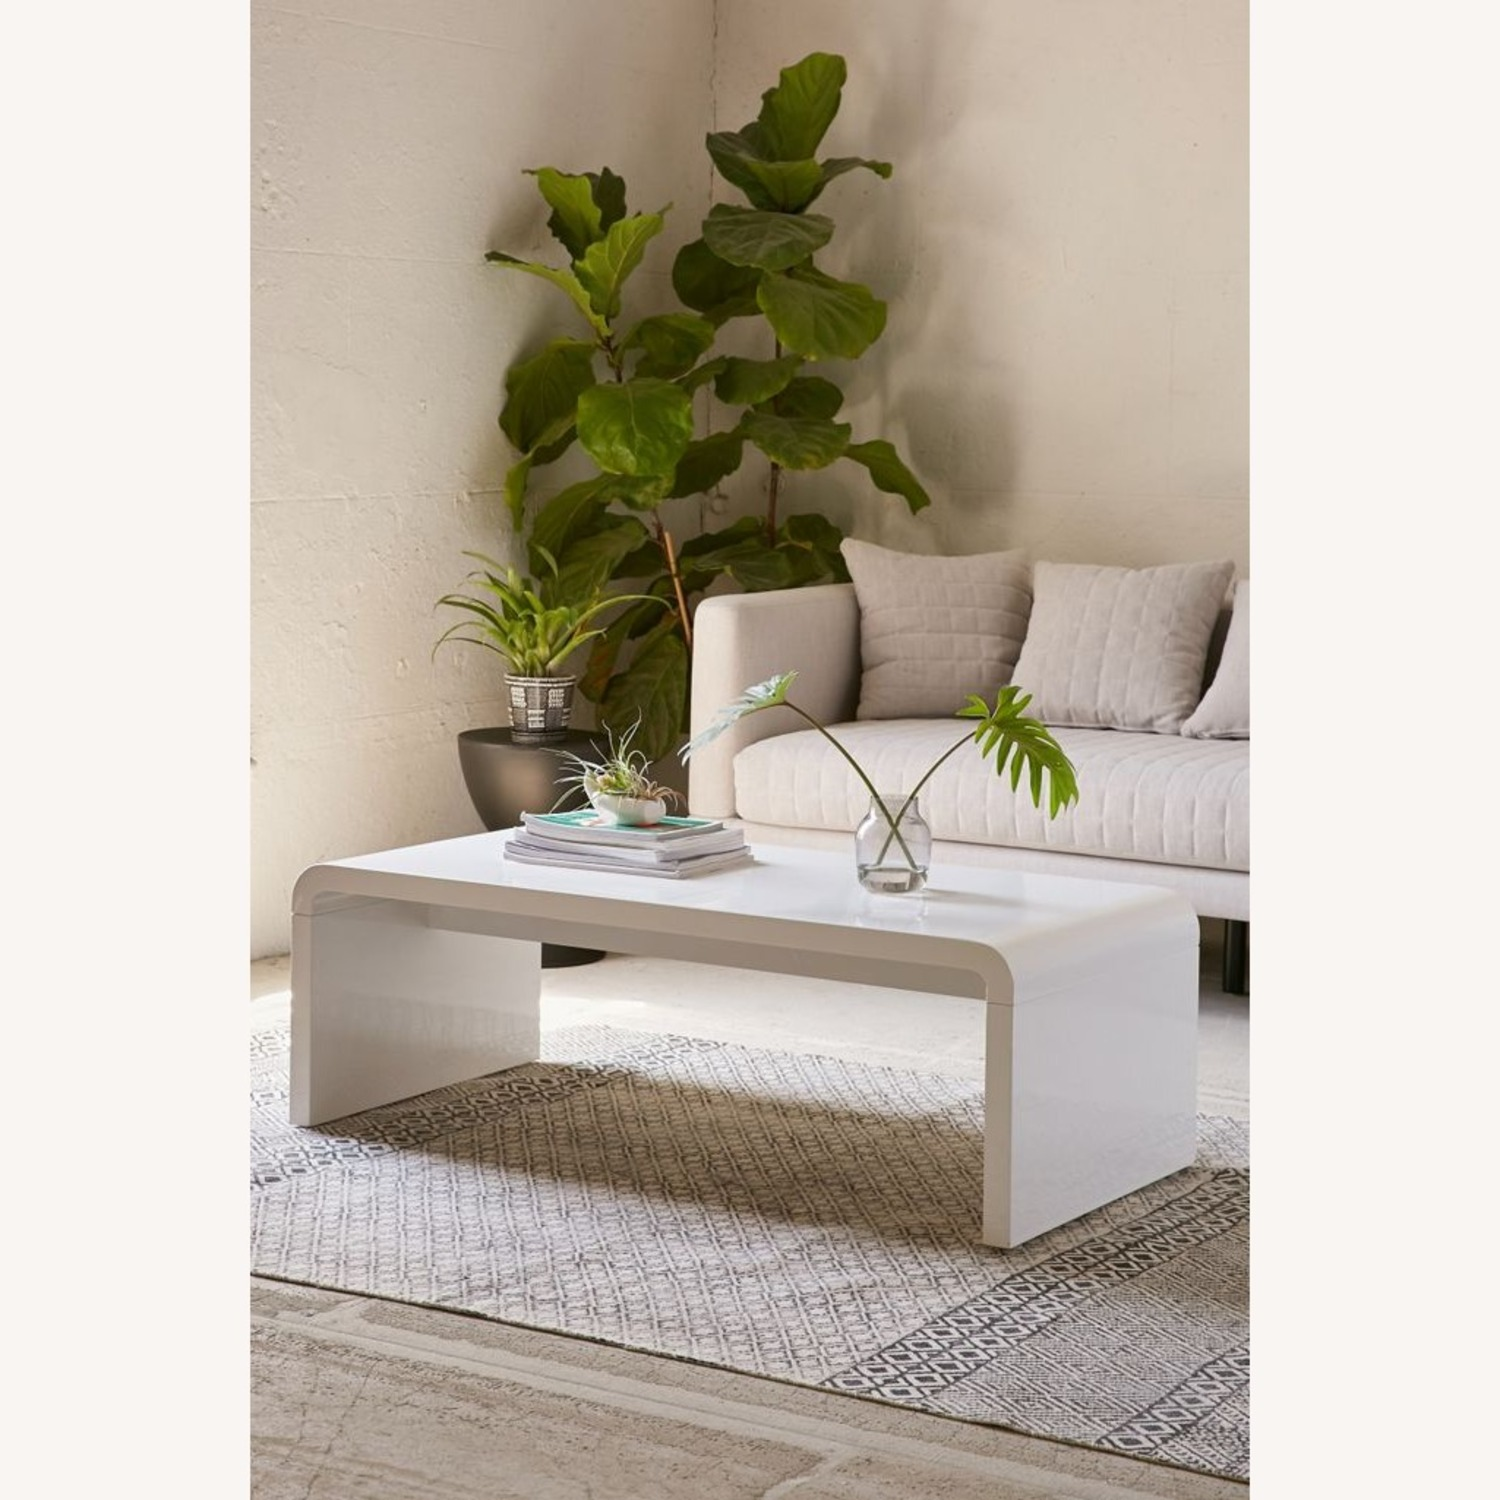 Urban Outfitters Hamilton Curved Coffee Table - image-1